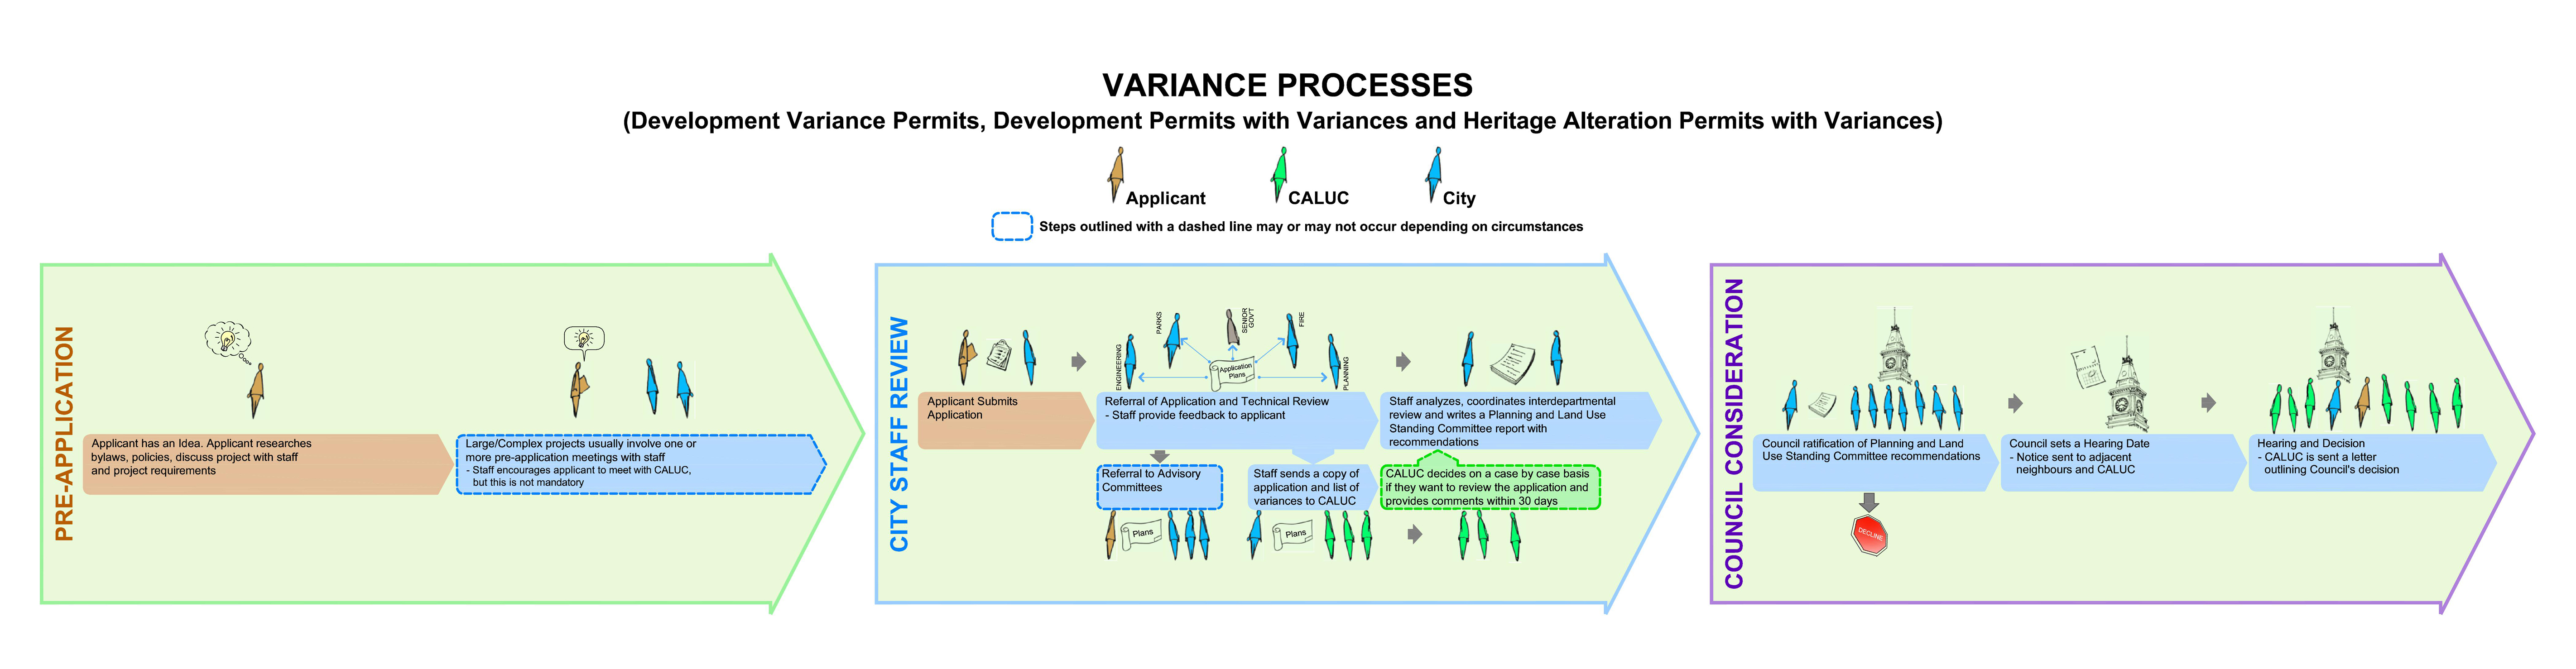 Community Association Land Use Committees Victoria Process Flow Diagram Uses Application Submission And Review